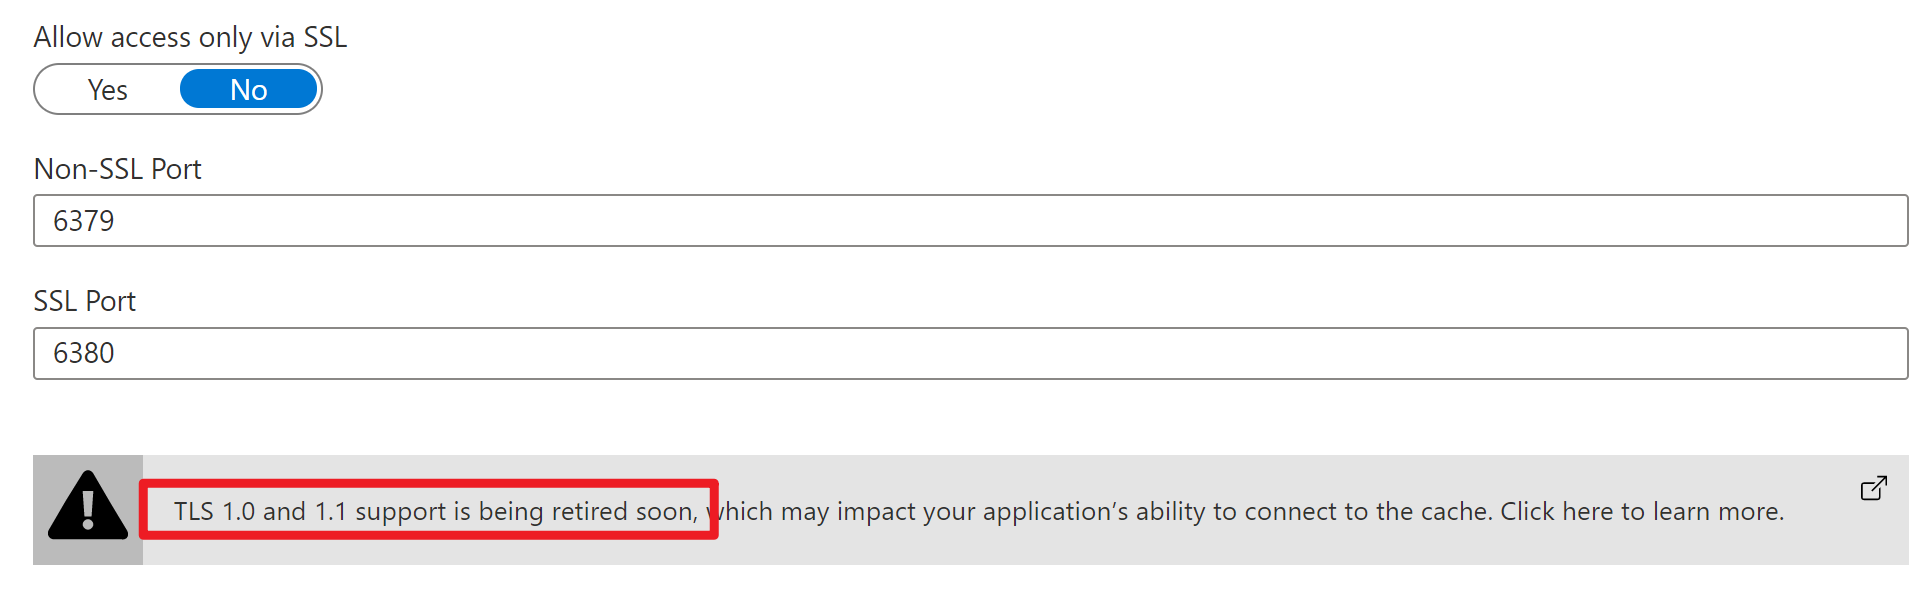 【Azure Redis 缓存】云服务Worker Role中调用StackExchange.Redis,遇见莫名异常(RedisConnectionException: UnableToConnect on  xxx  或  No connection is available to service this operation: xxx)